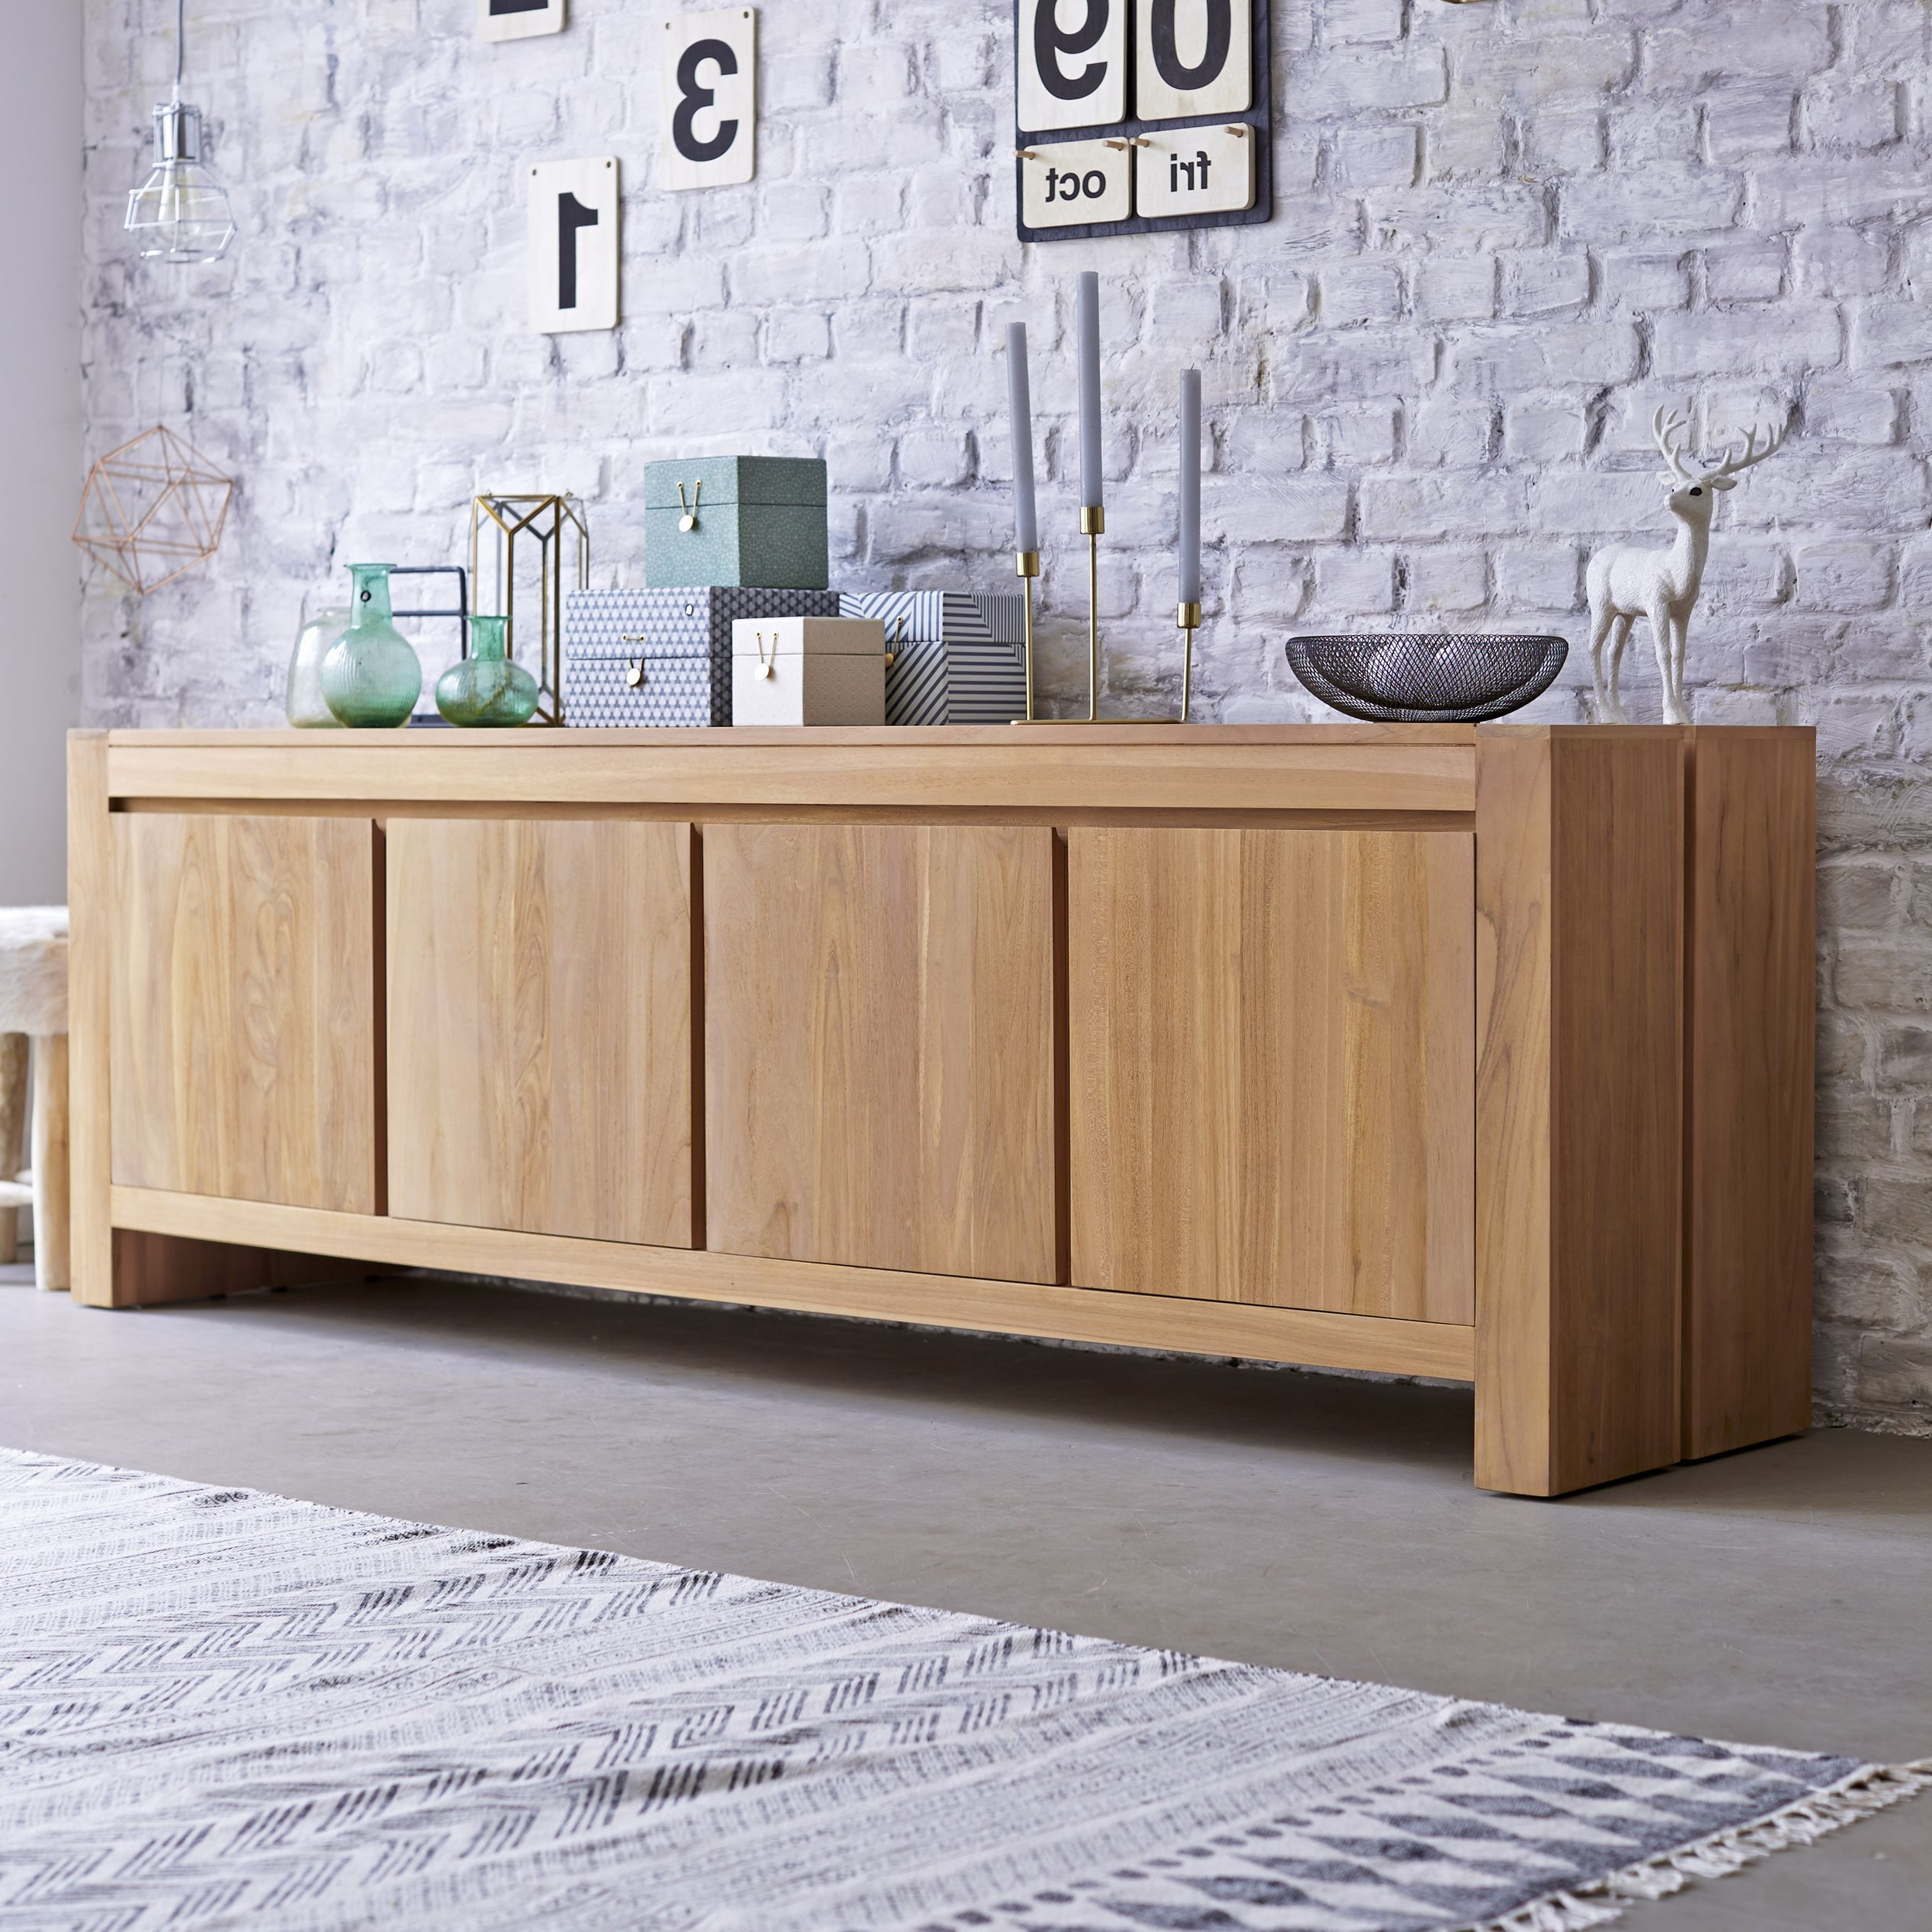 Modern Or Mid Century, Large Our Thin, You Must See What Within Cher Sideboards (View 11 of 20)